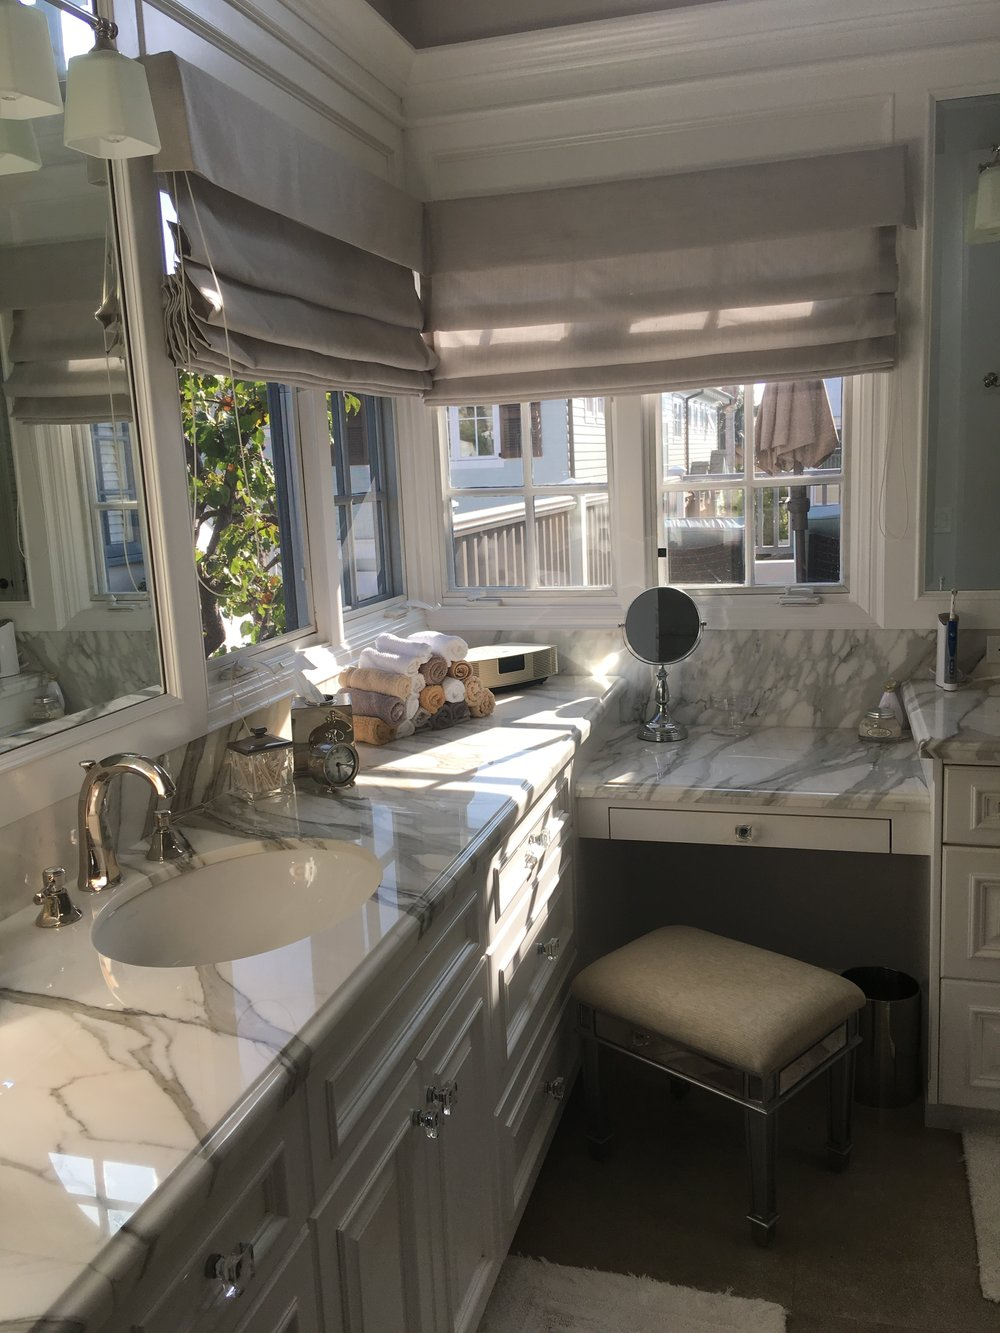 bayshores bathroom counter